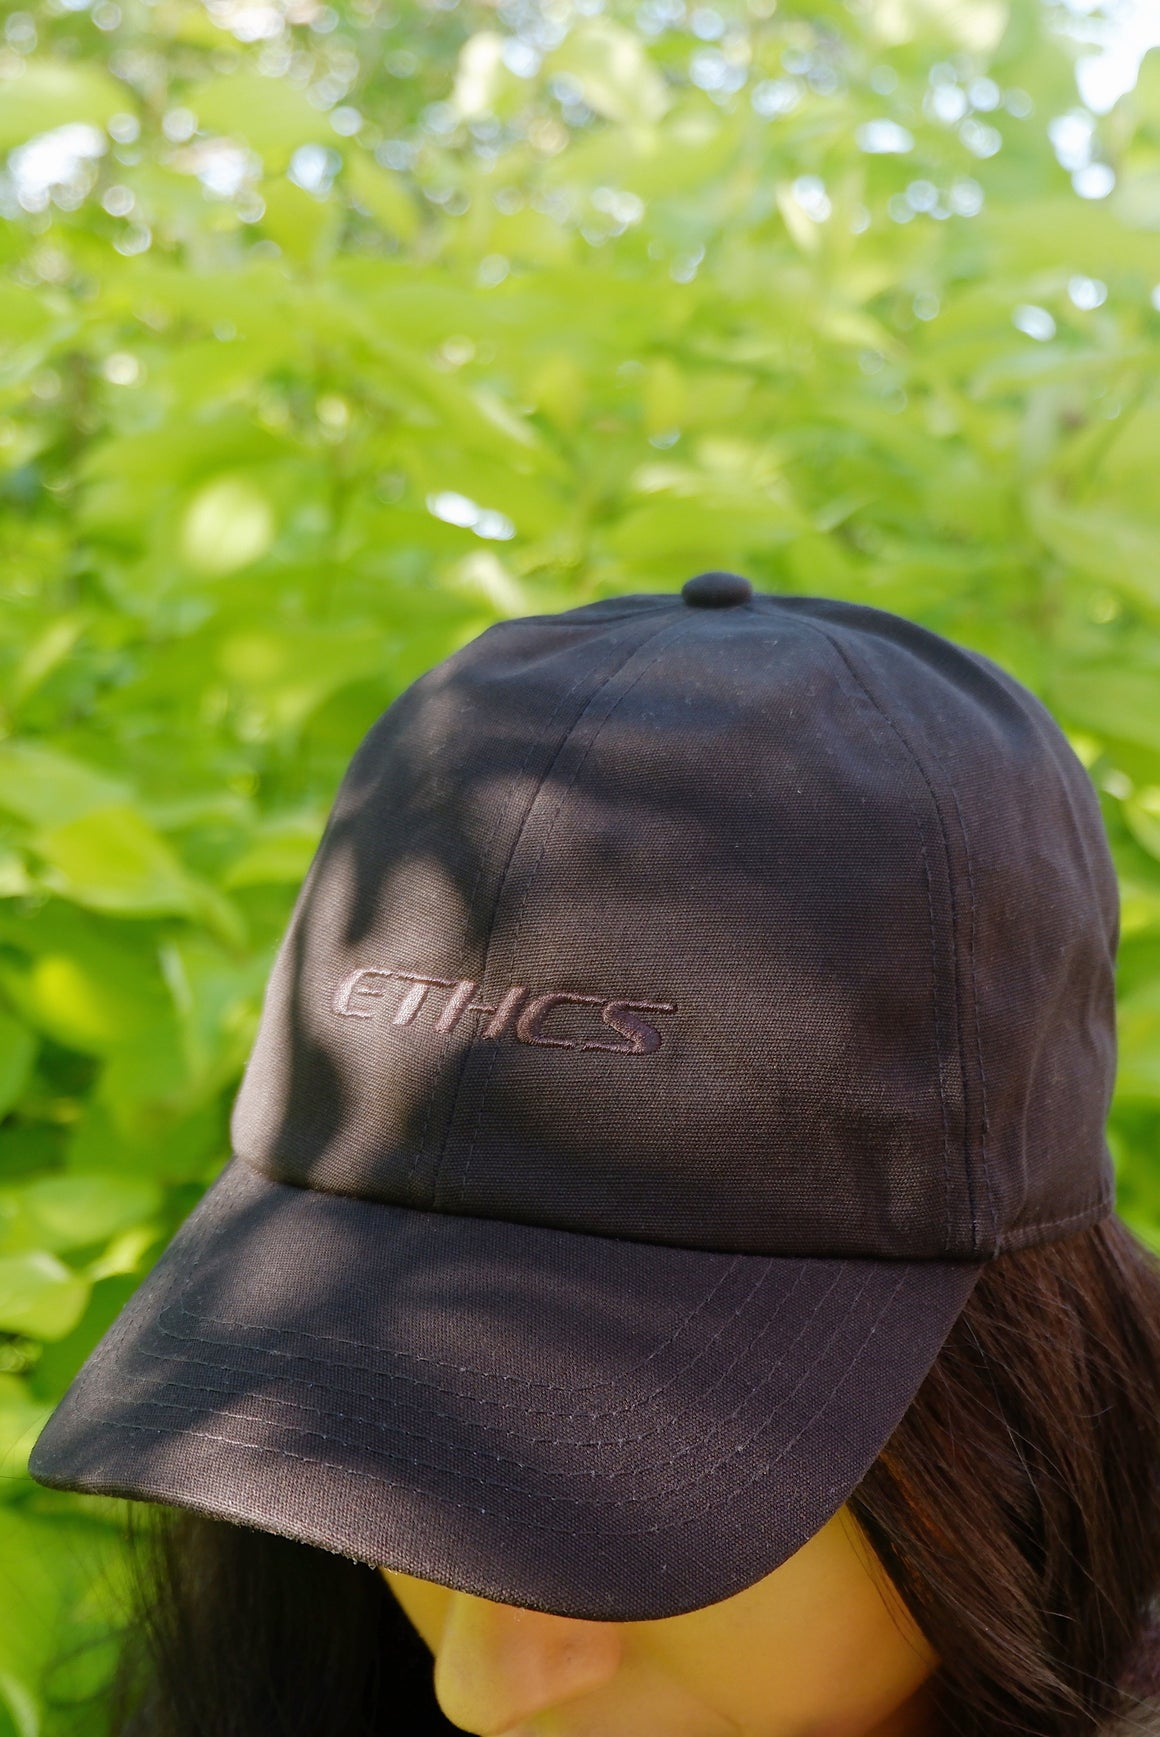 Hat - Ethics and Antics vegan nagev vgang clothing